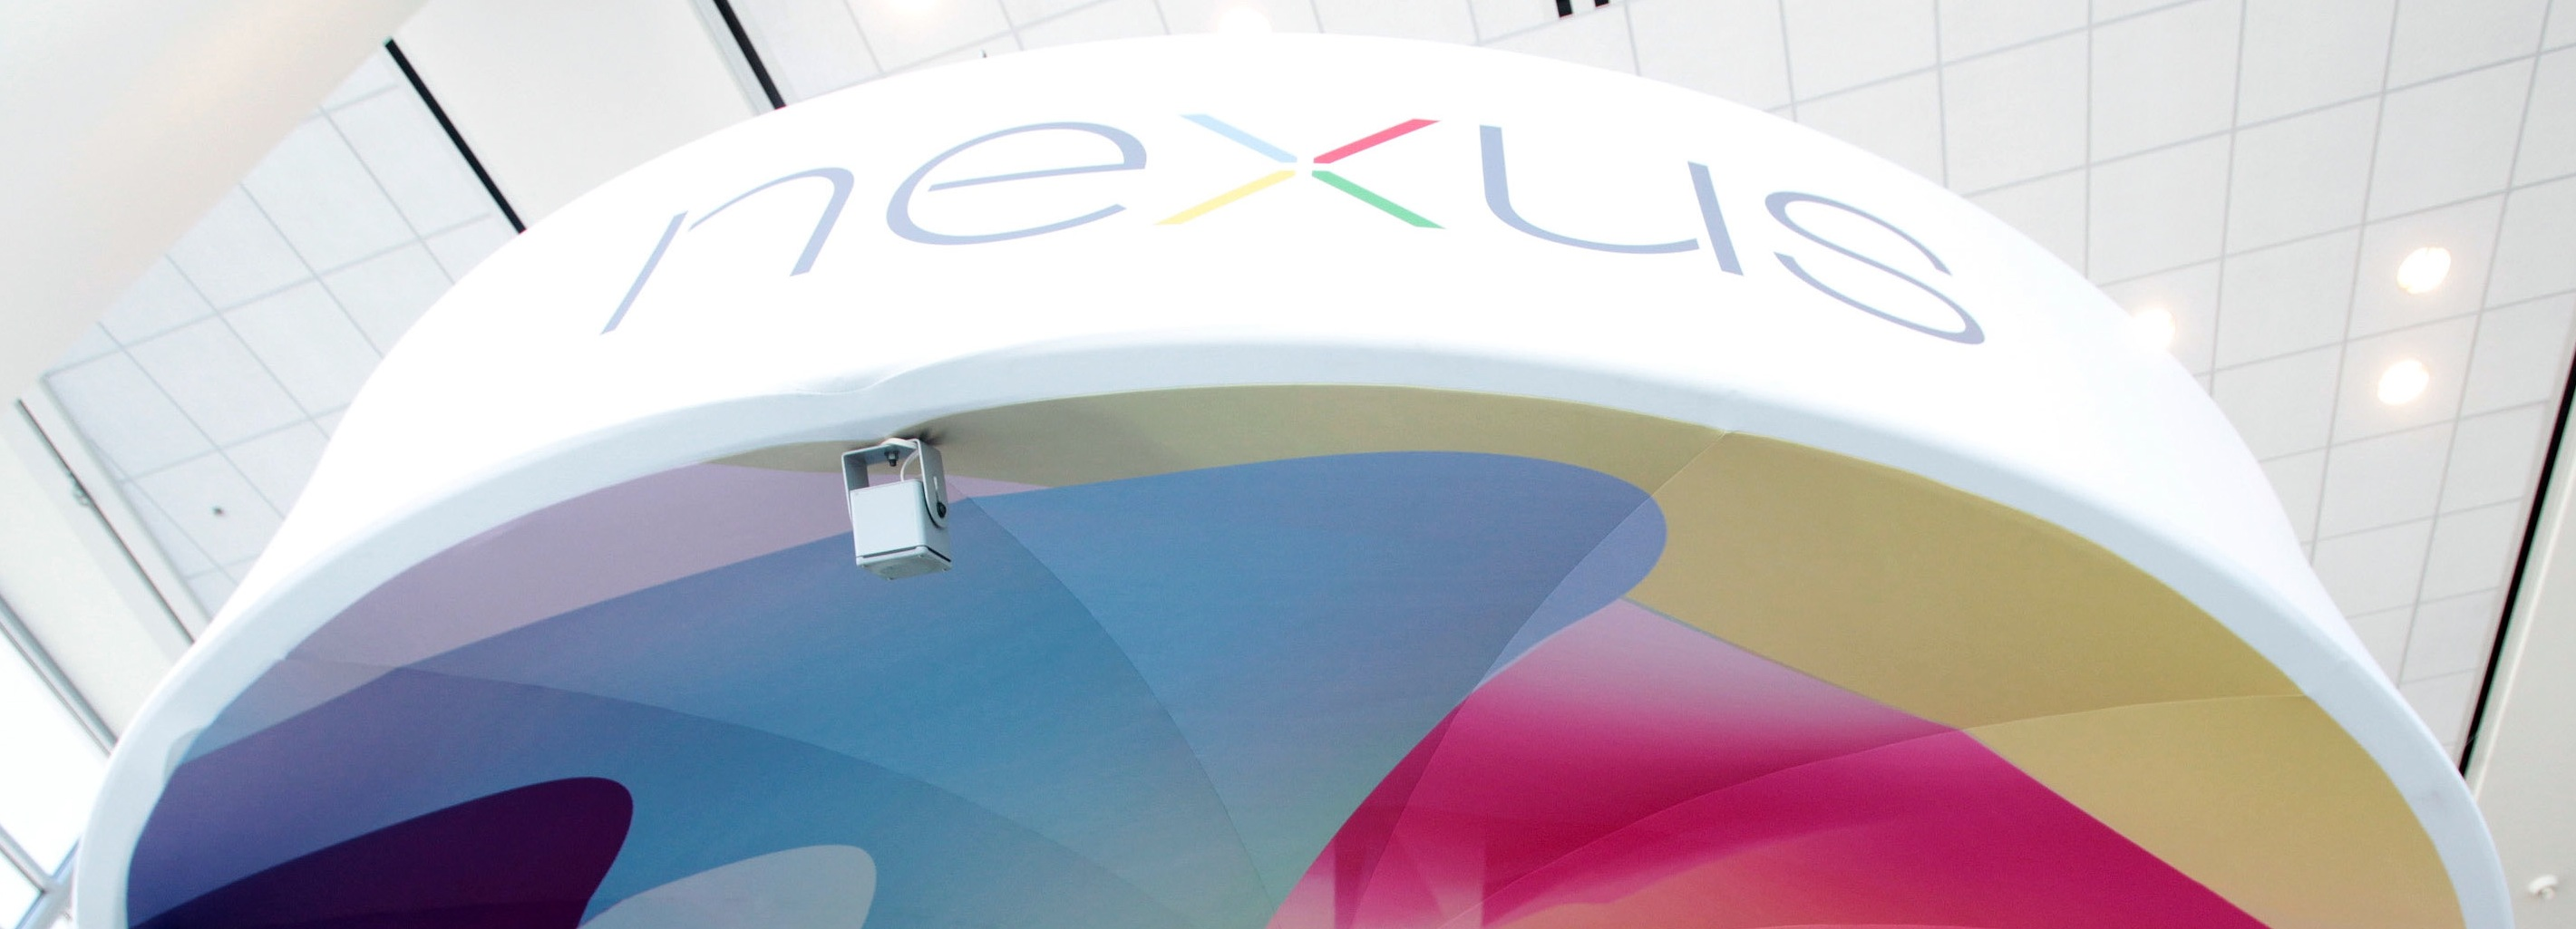 Google's new Samsung-made Nexus 10 confirmed in user guide leak